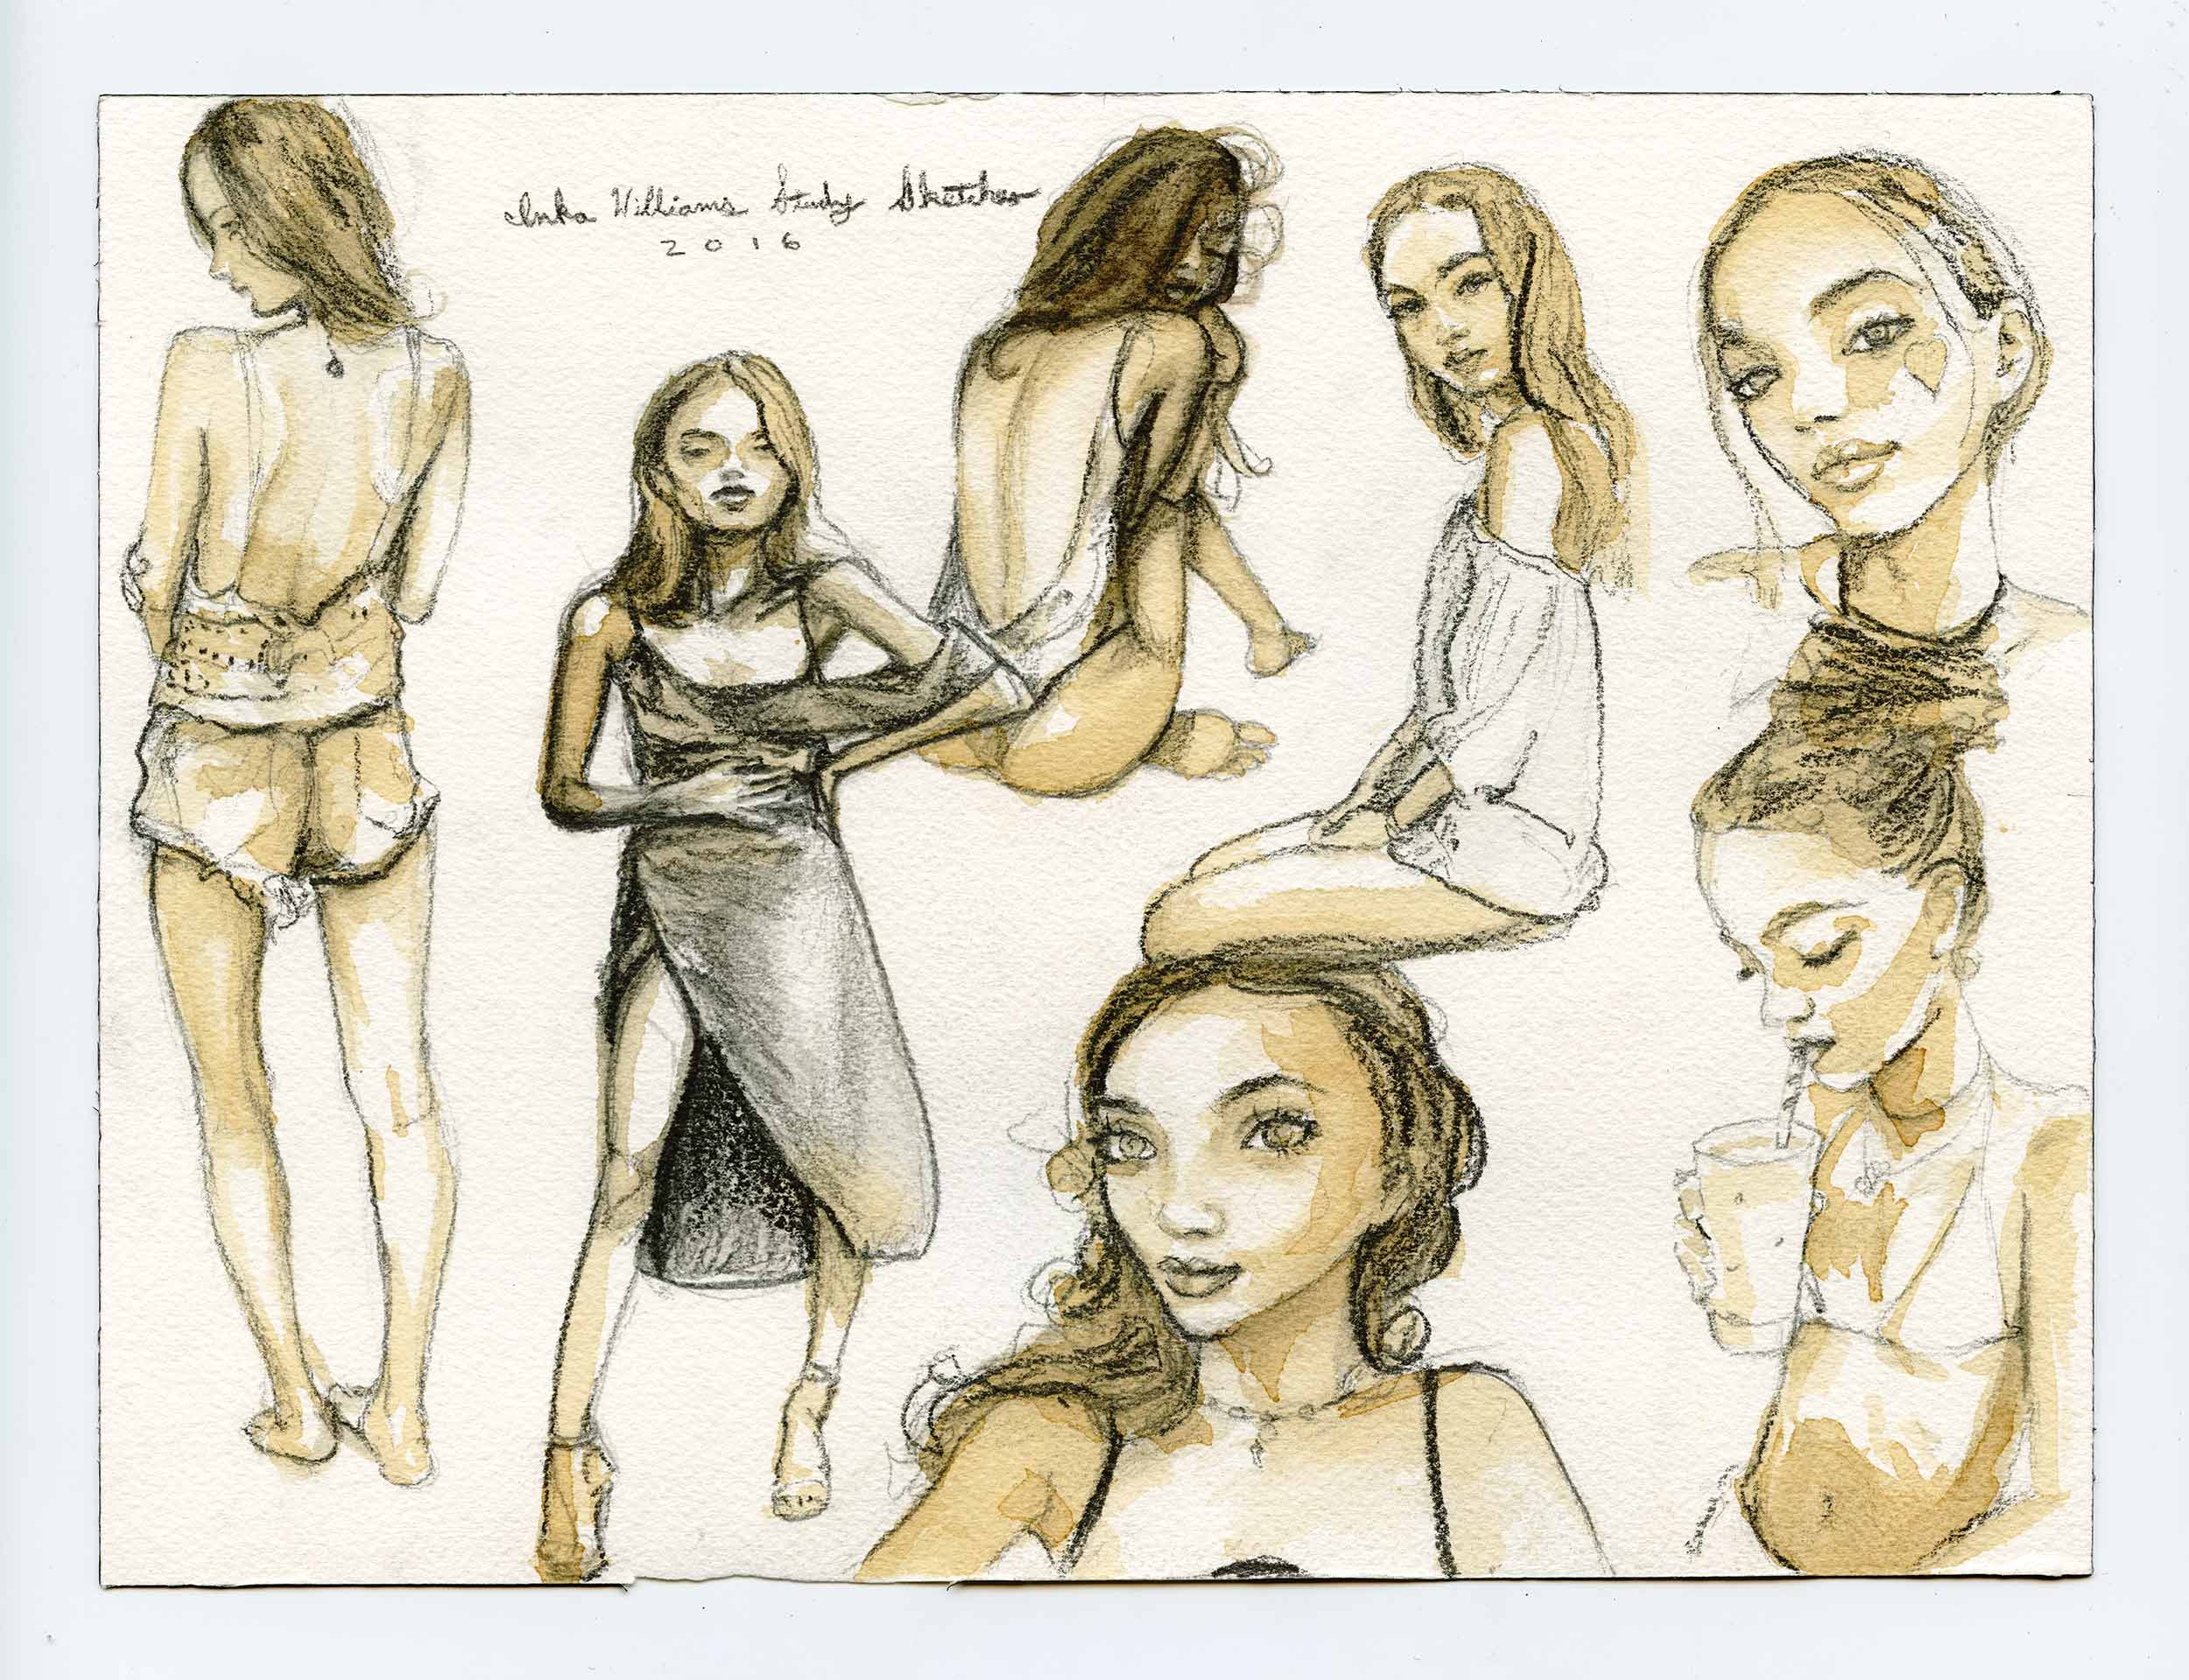 Artist Danny Roberts Coffee and Pencil Daily Gesture Sketches of model Inka Williams